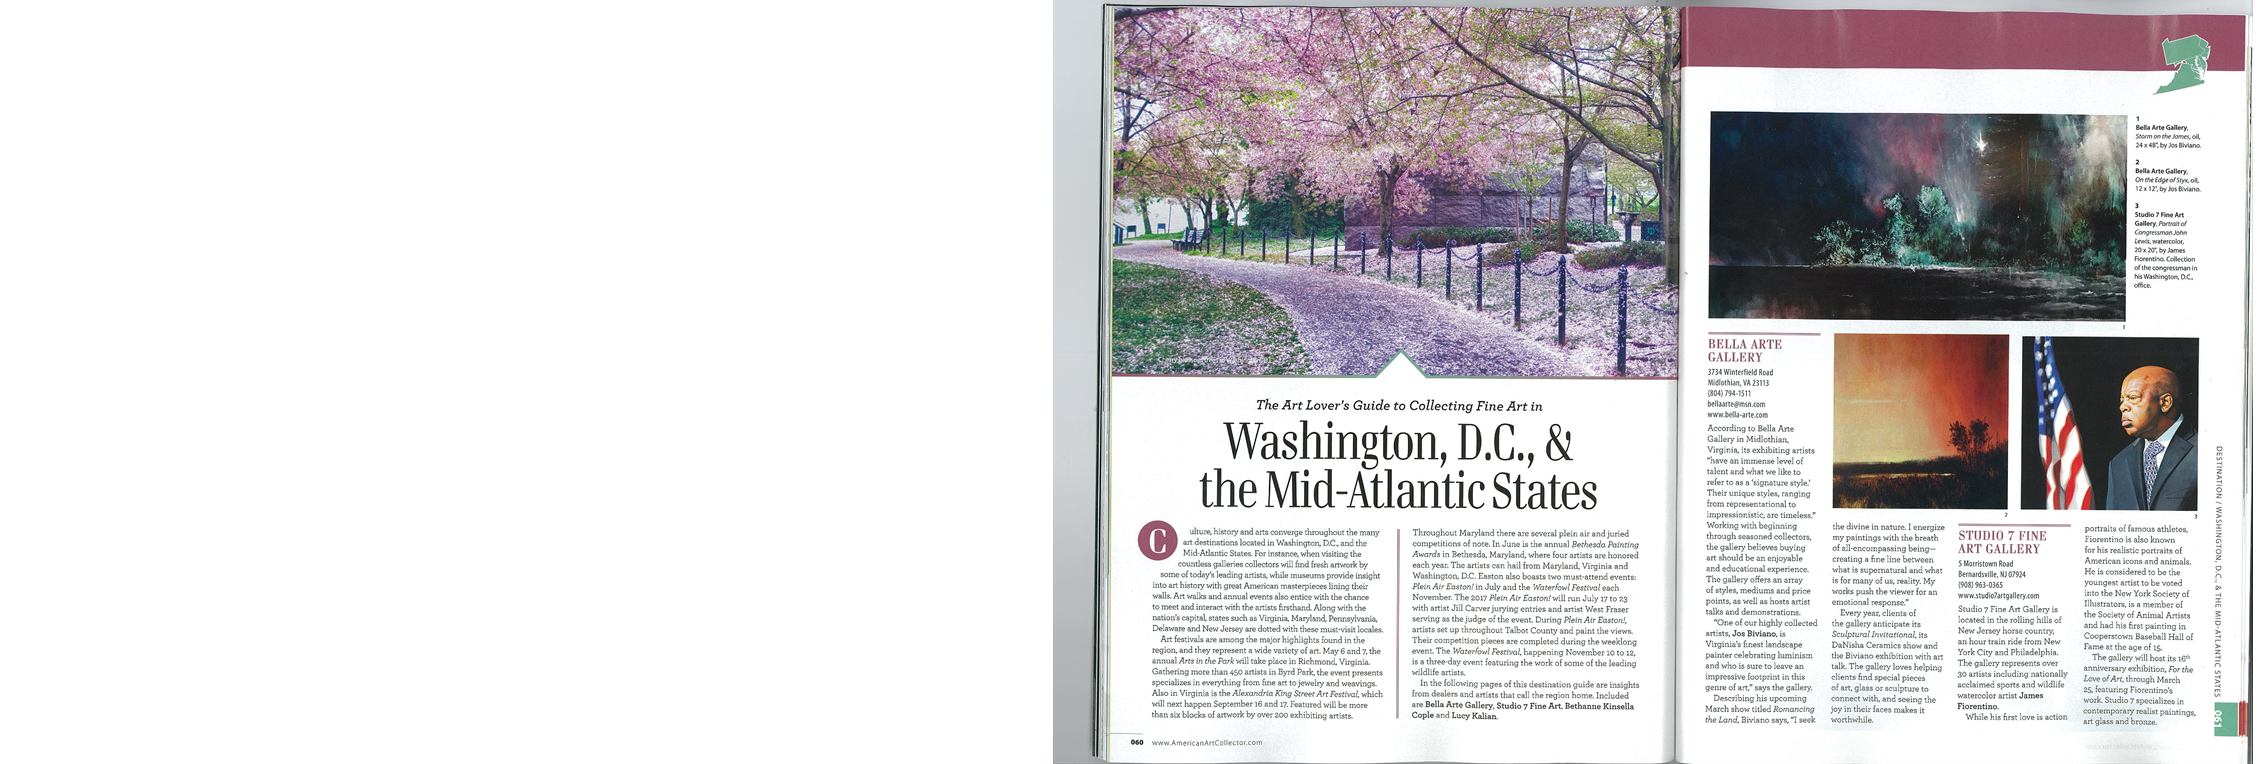 American Art Collector The Art Lover's Guide to Collecting Fine Art in Washington, DC and Mid Atlantic States